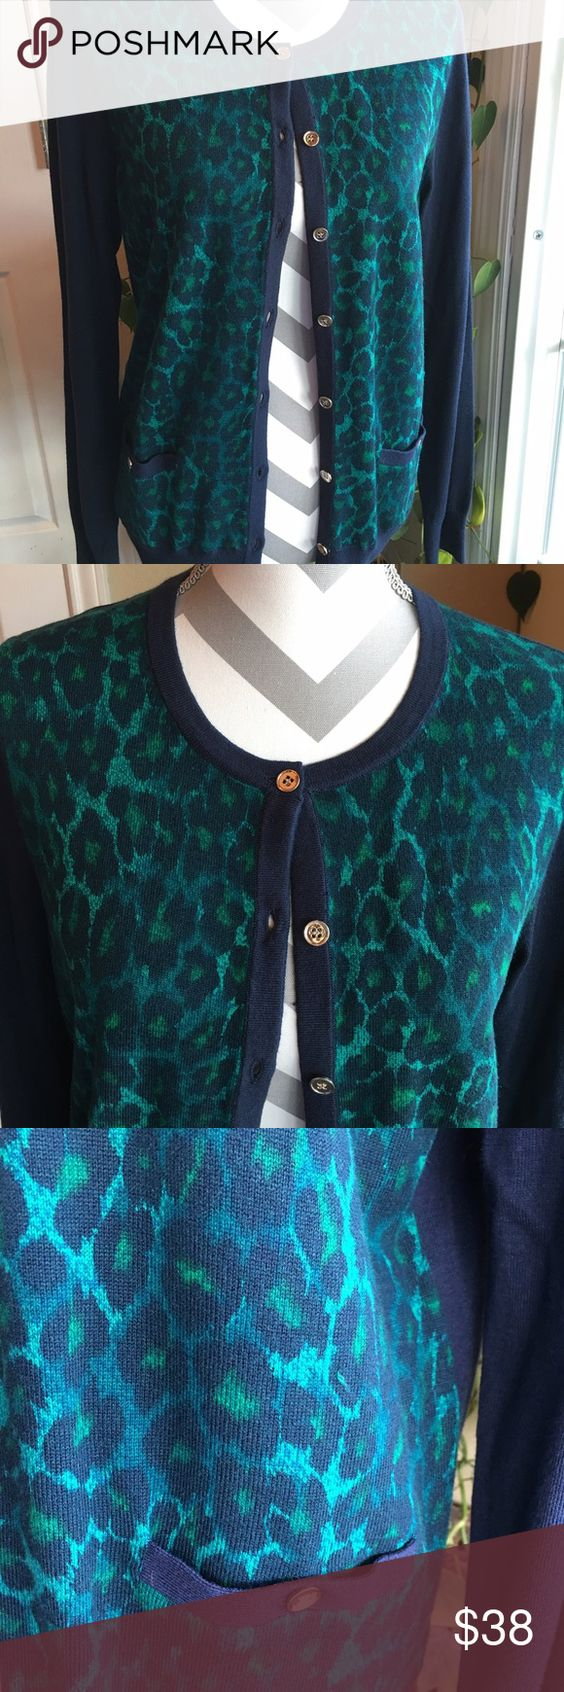 Ann Taylor cardigan Beautiful Blu and green cardigan.  Animal print with gold tone buttons.  NWT. Ann Taylor Sweaters Cardigans